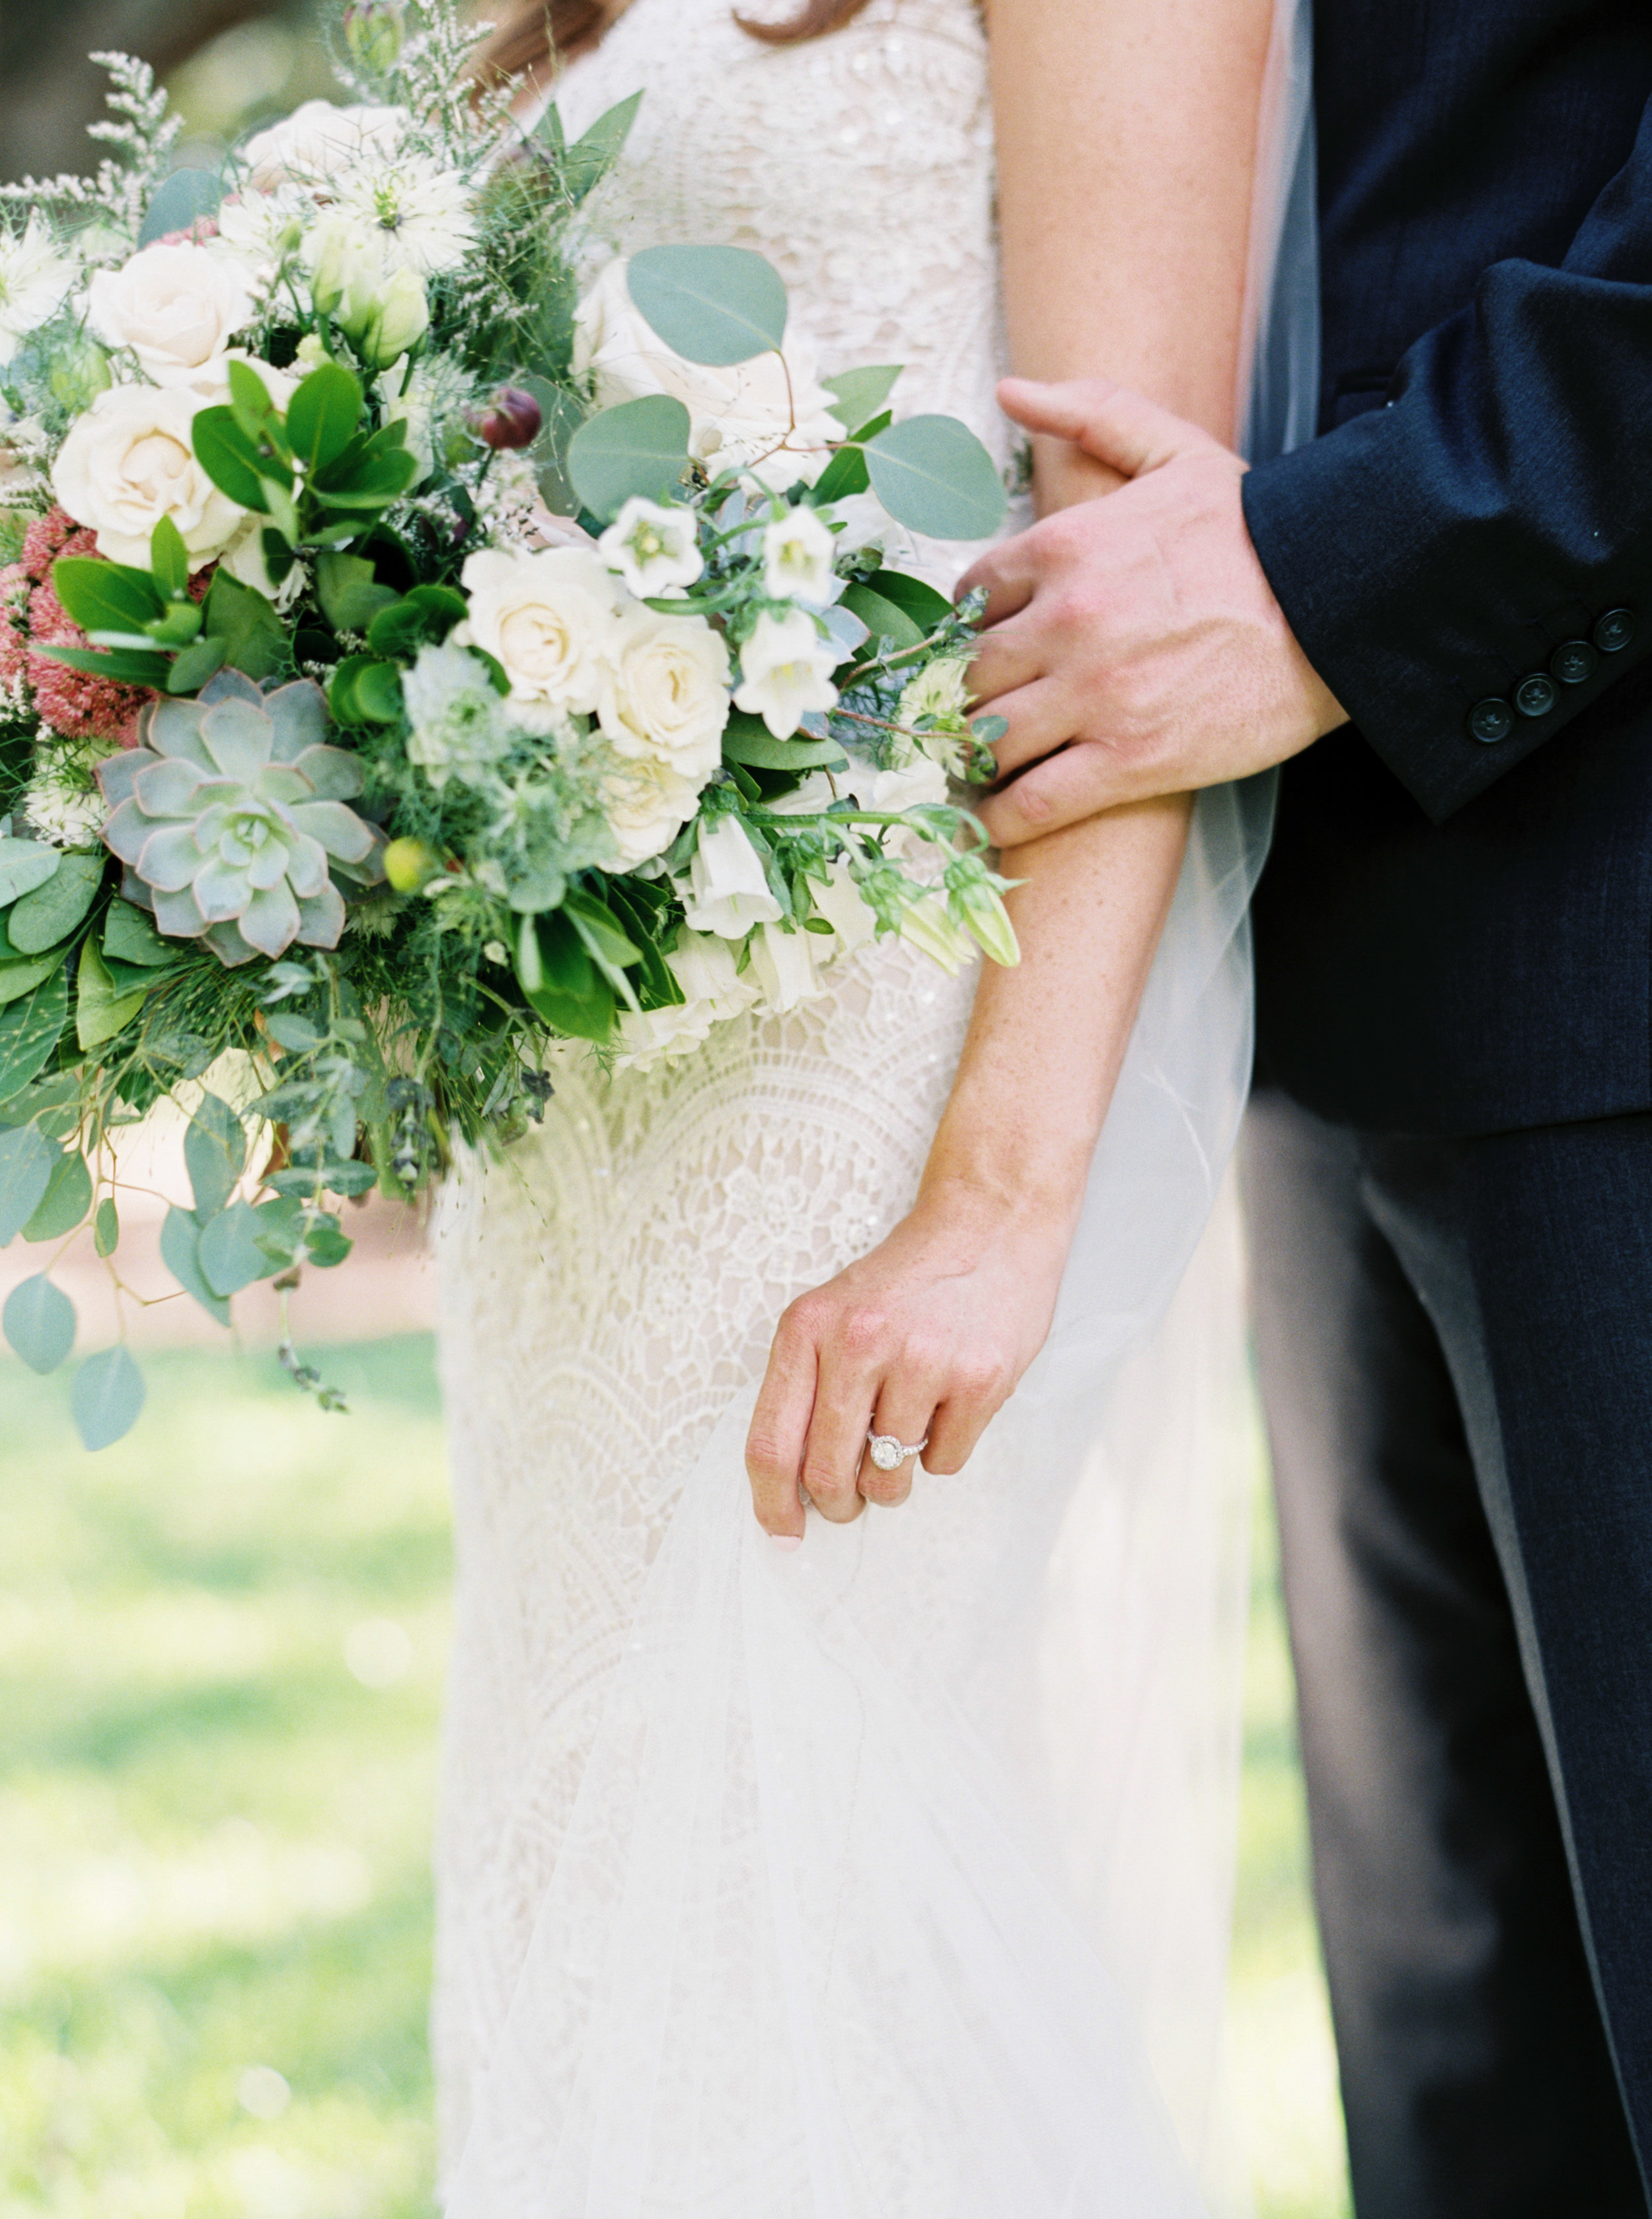 Eden Gardens State Park wedding. Image courtesy of Cassidy Carson Photography.